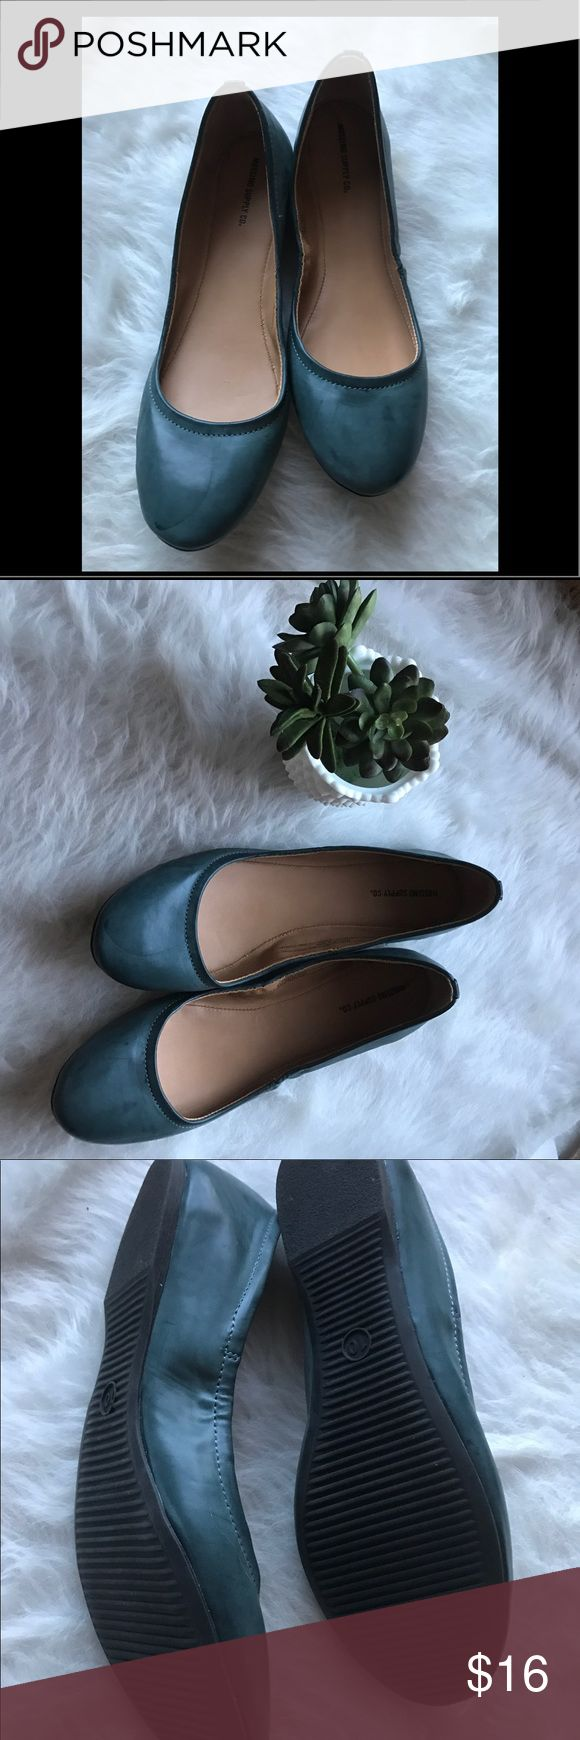 Mossimo Supply Co. round toe blue gray flats Mossimo Supply Co. round toe blue gray flats. Excellent condition professional casual flats. Versatile and a wardrobe staple. Pair with dress, skirt or ankle crop pants! Mossimo Supply Co. Shoes Flats & Loafers